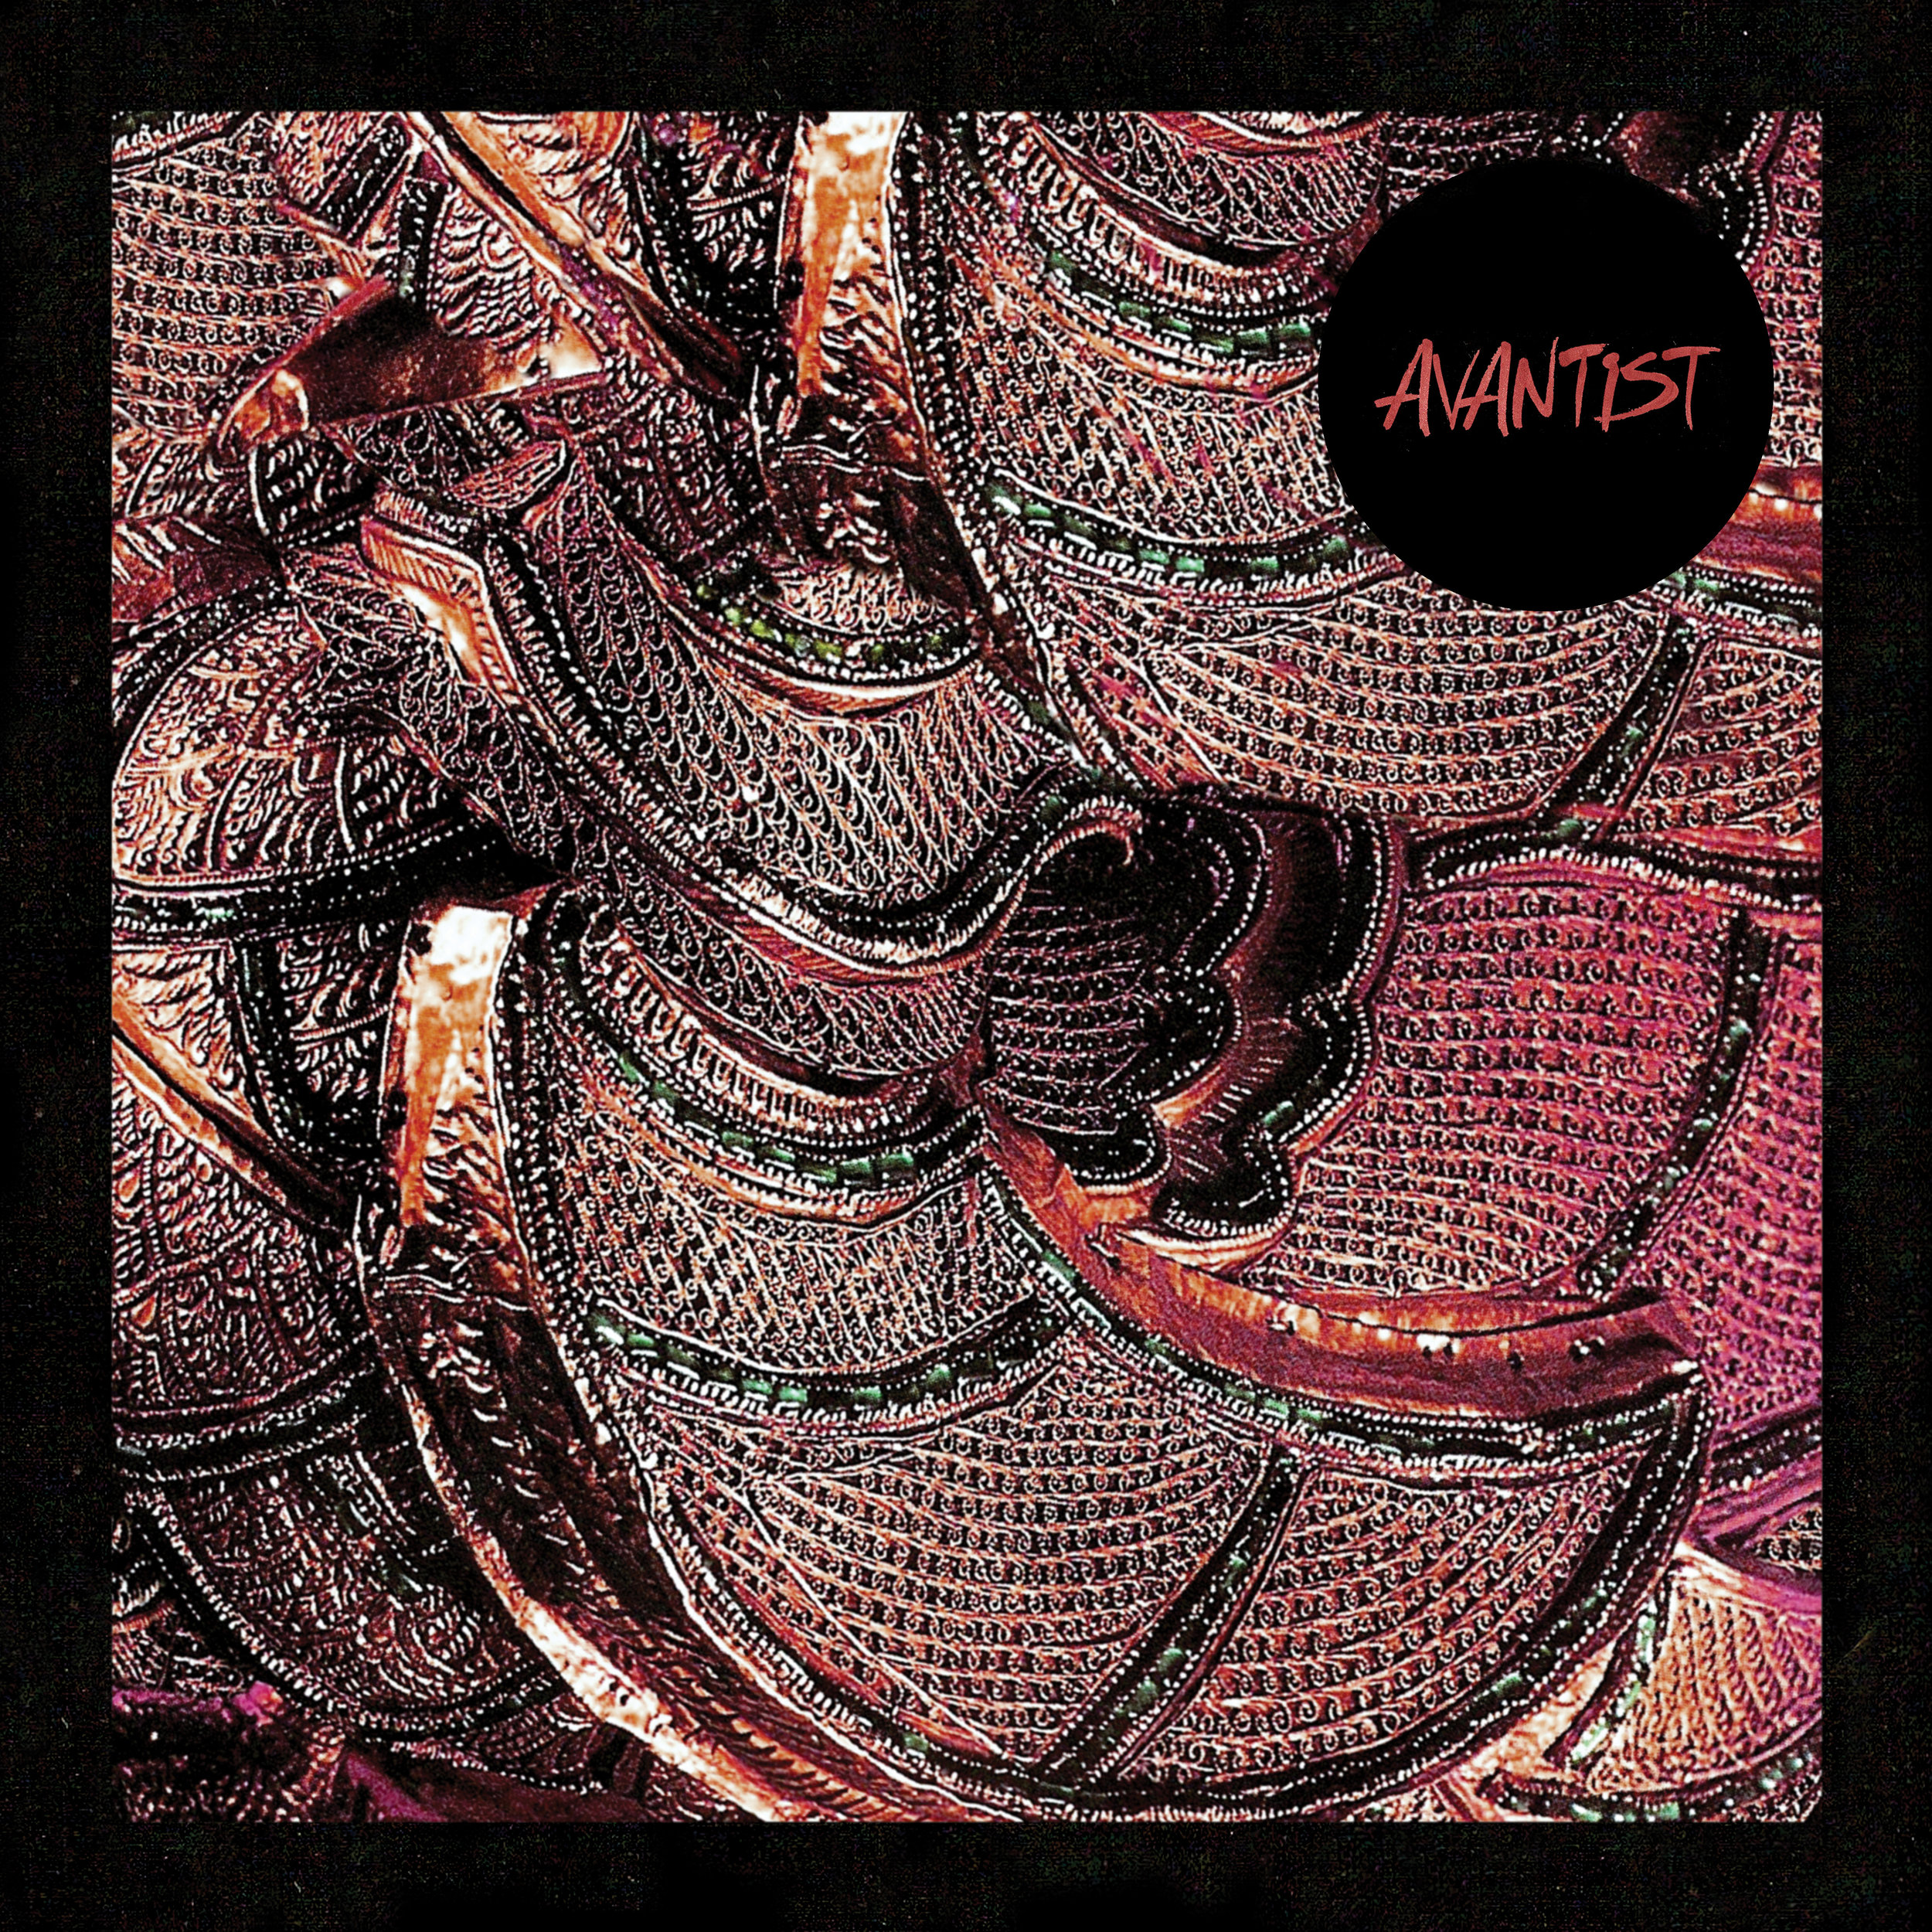 """AVANTIST"",  Self-Titled (2018, No Trend Records)"